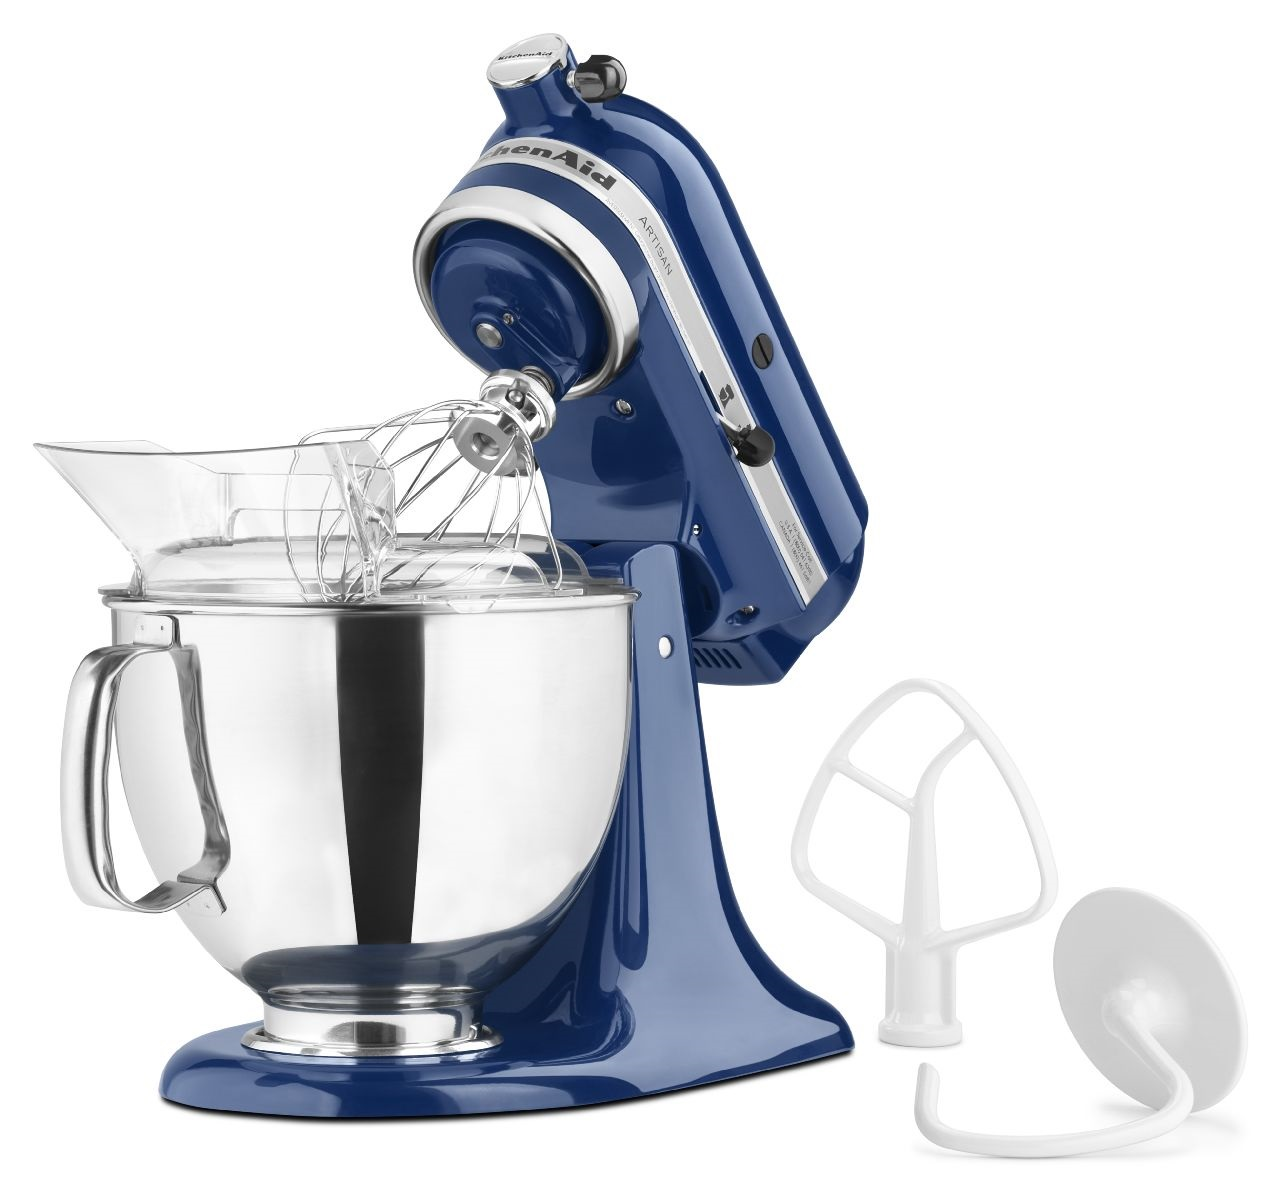 KitchenAid-Refurbished-Artisan-Series-5-Quart-Tilt-Head-Stand-Mixer-RRK150 thumbnail 21